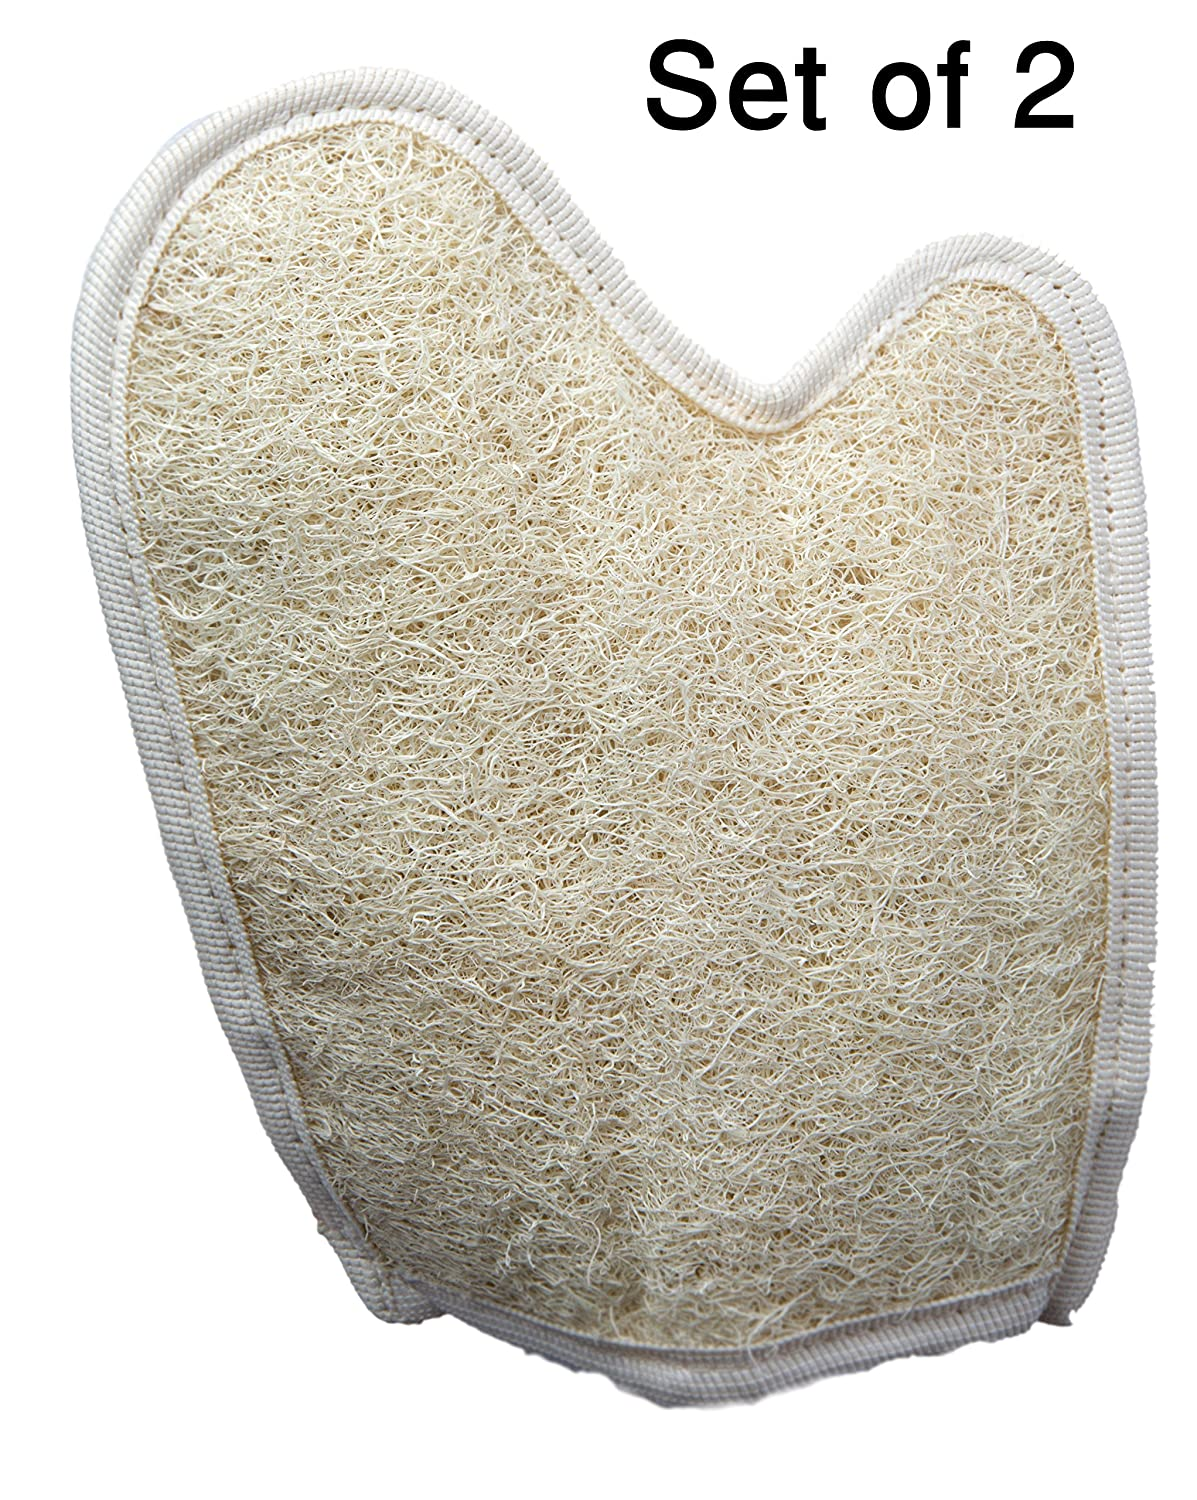 One Whole Luxurious 100% Natural SPA Beauty Egyptian Organic Loofah Bath Sponge Body Scrubber. Premium Quality Lofa Loofa Luffa Loffa for exfoliating your skin. CraftsOfEgypt